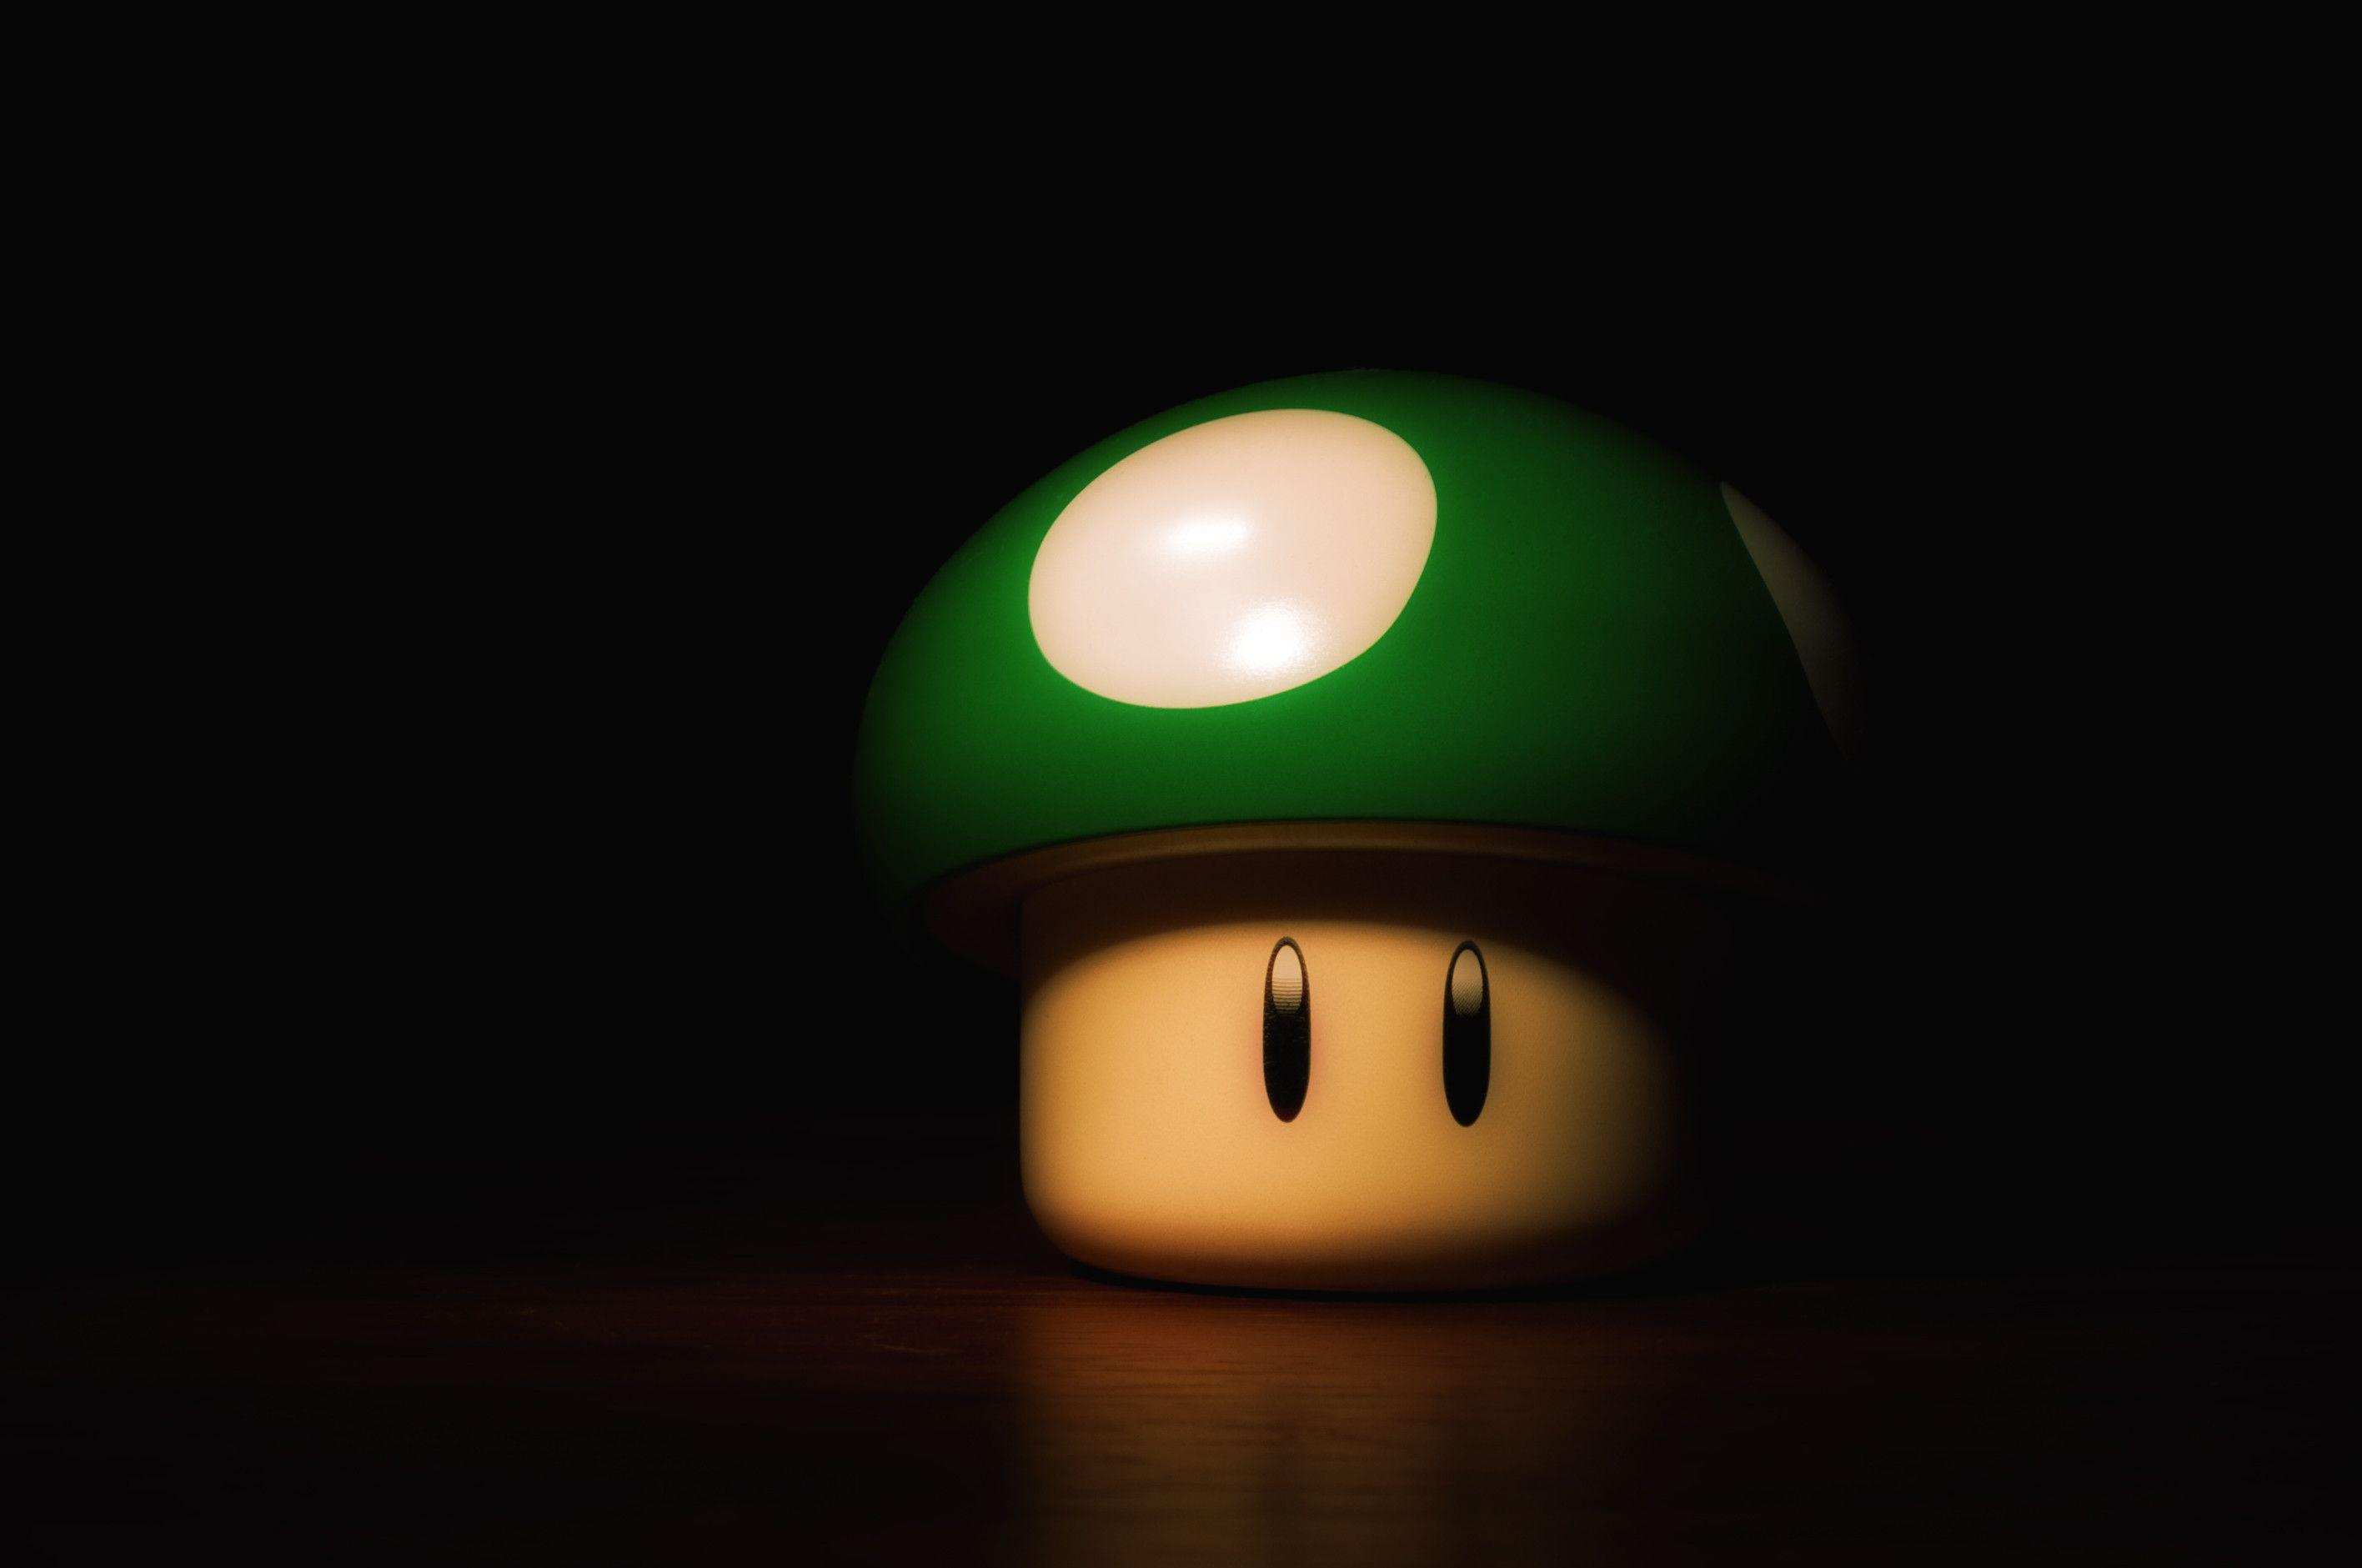 Mario Wallpapers Hd Wallpaper Cave